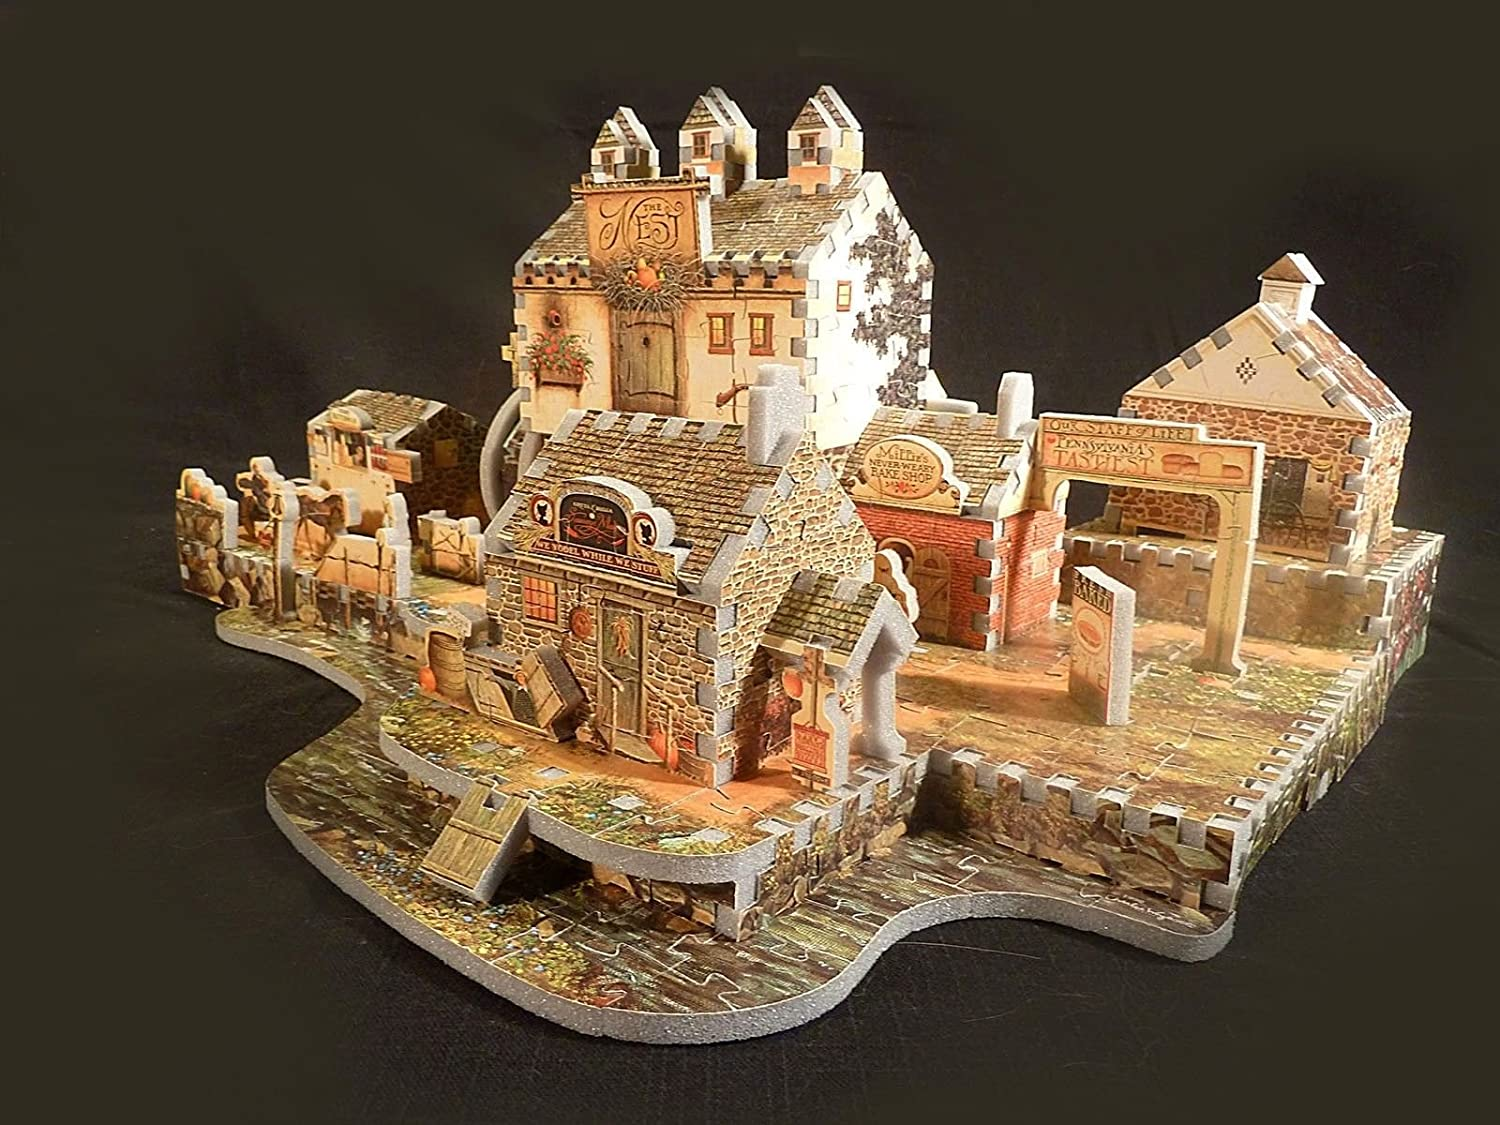 【WEB限定】 Old Mill by at Stony Jigsaw Creek, Wrebbit 745 Piece 3D Jigsaw Puzzle Made by Wrebbit Puzz-3D by Wrebbit [並行輸入品] B006GY0HJ8, 向日市:740e862b --- quiltersinfo.yarnslave.com